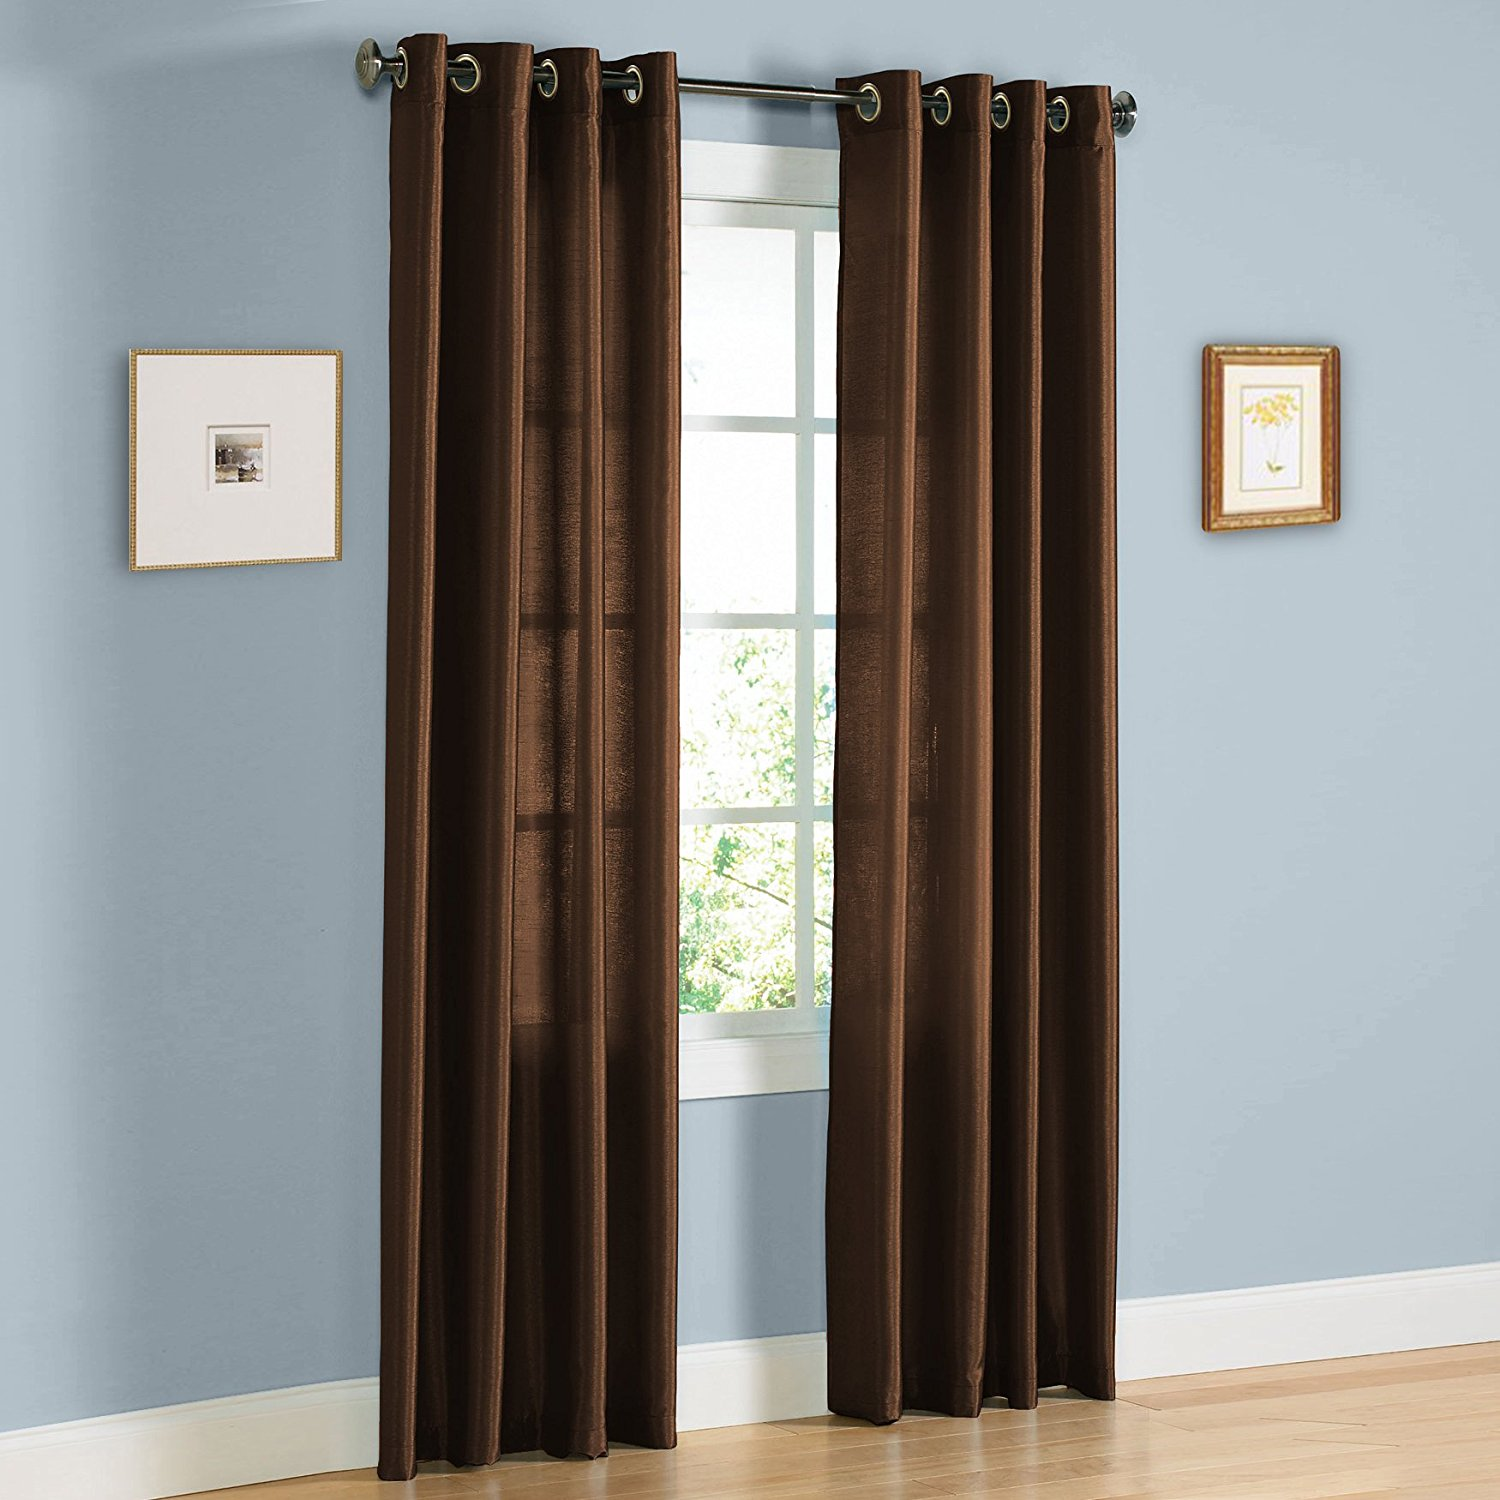 x panel and p canada en decor inch blackout depot drapes home curtain categories panels treatments the downtown curtains grommet cheap window